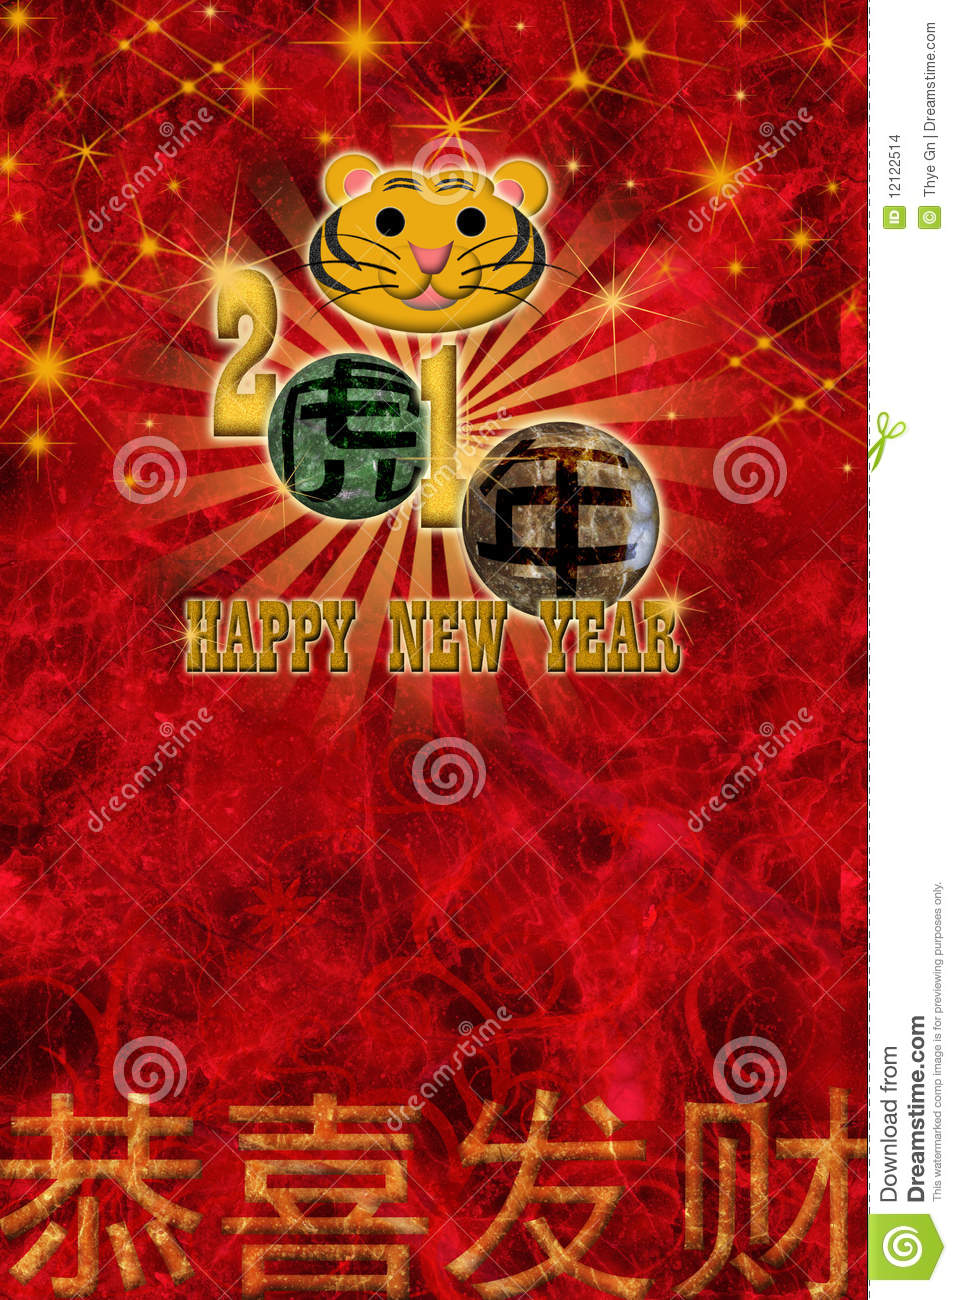 Chinese New Year 2010 Stock Illustration Illustration Of Gong